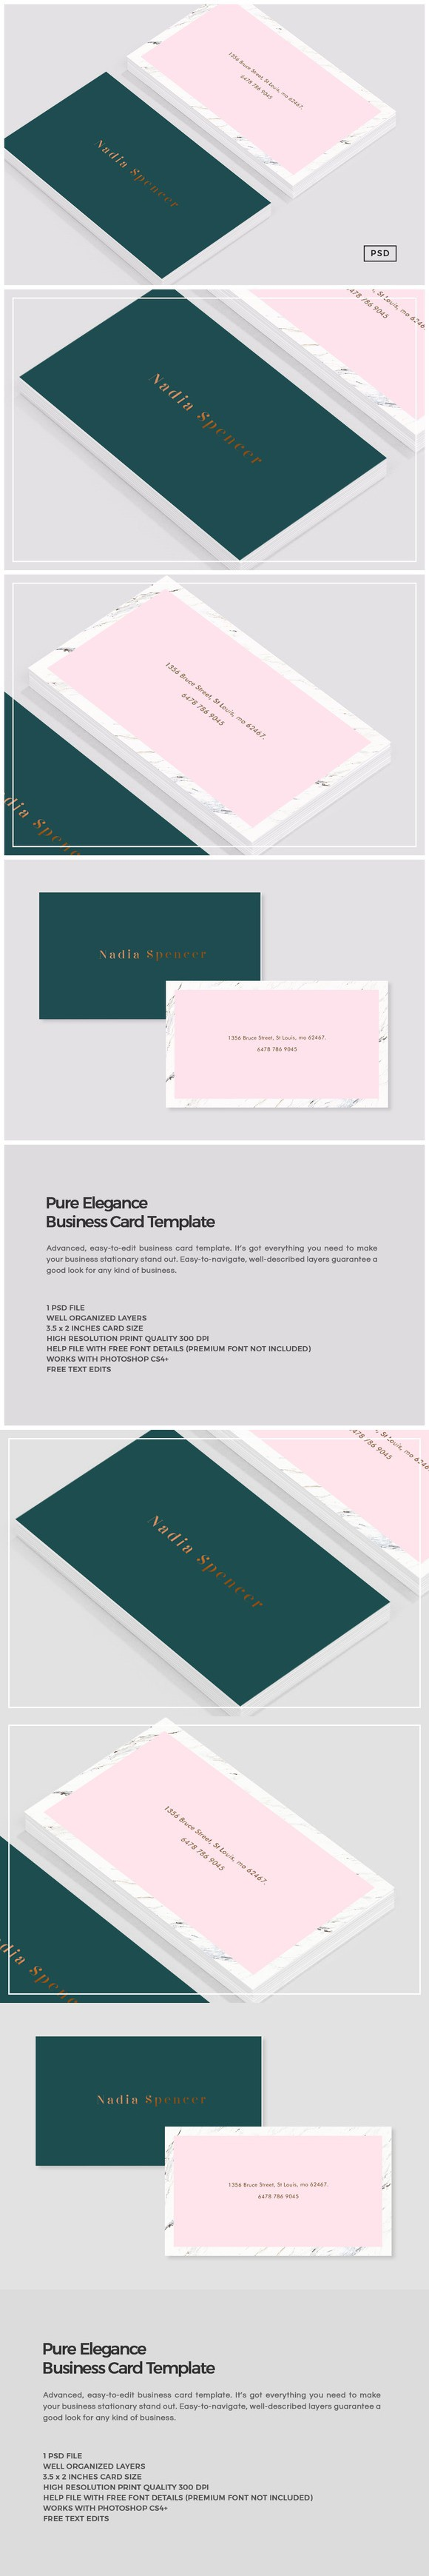 Pure Elegance Business Card Template